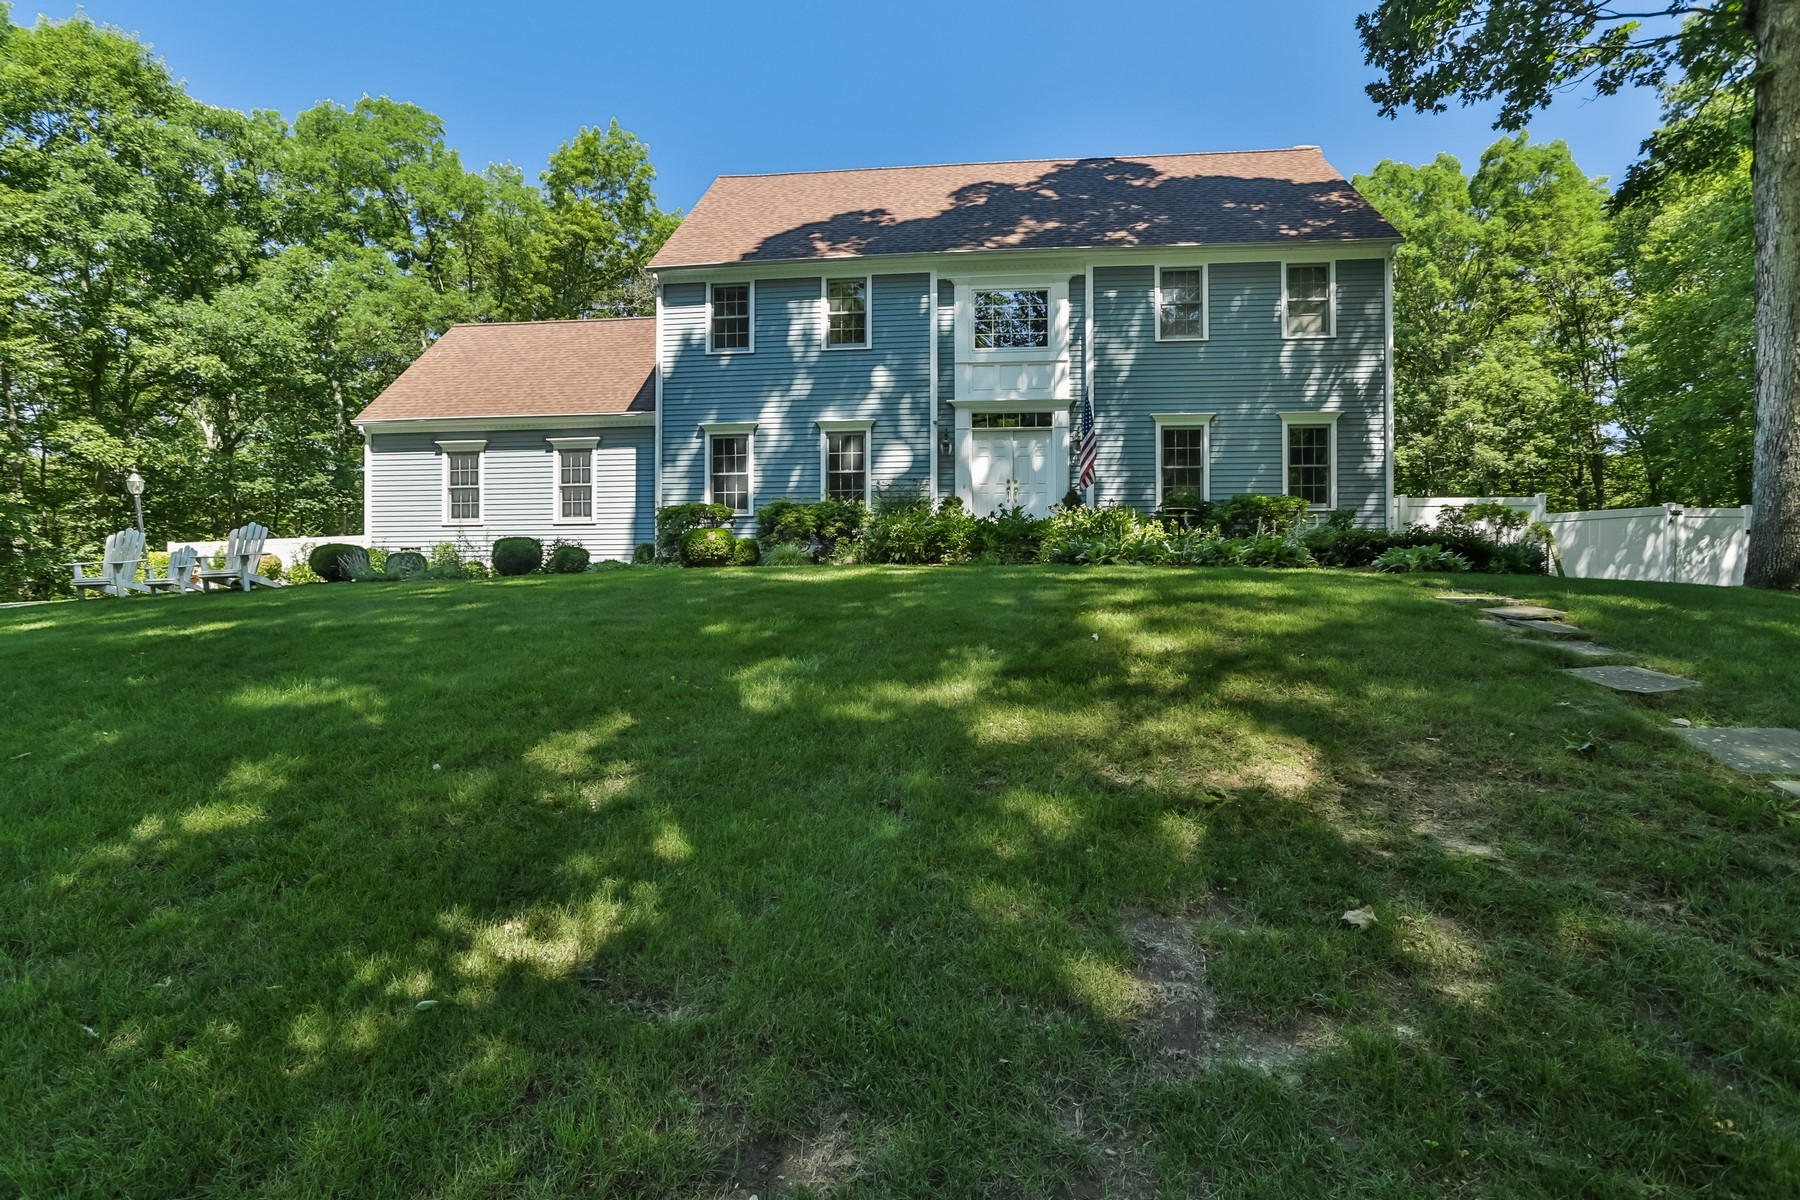 Single Family Home for Sale at Serene Colonial 30 Oak Lane Weston, Connecticut 06883 United States